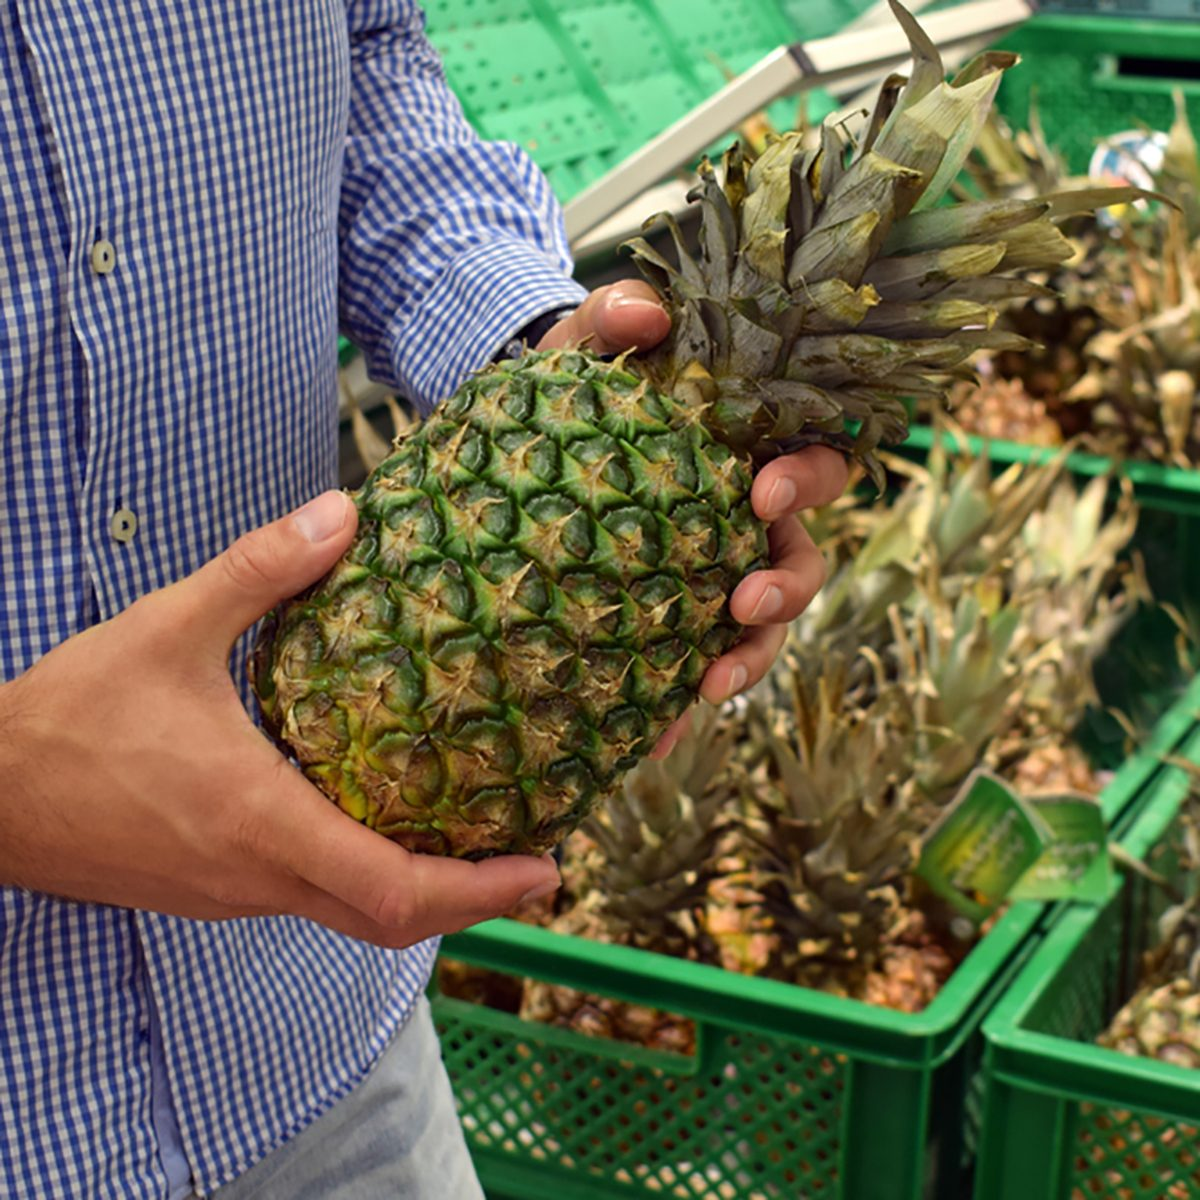 The guy chooses pineapples in the supermarket.